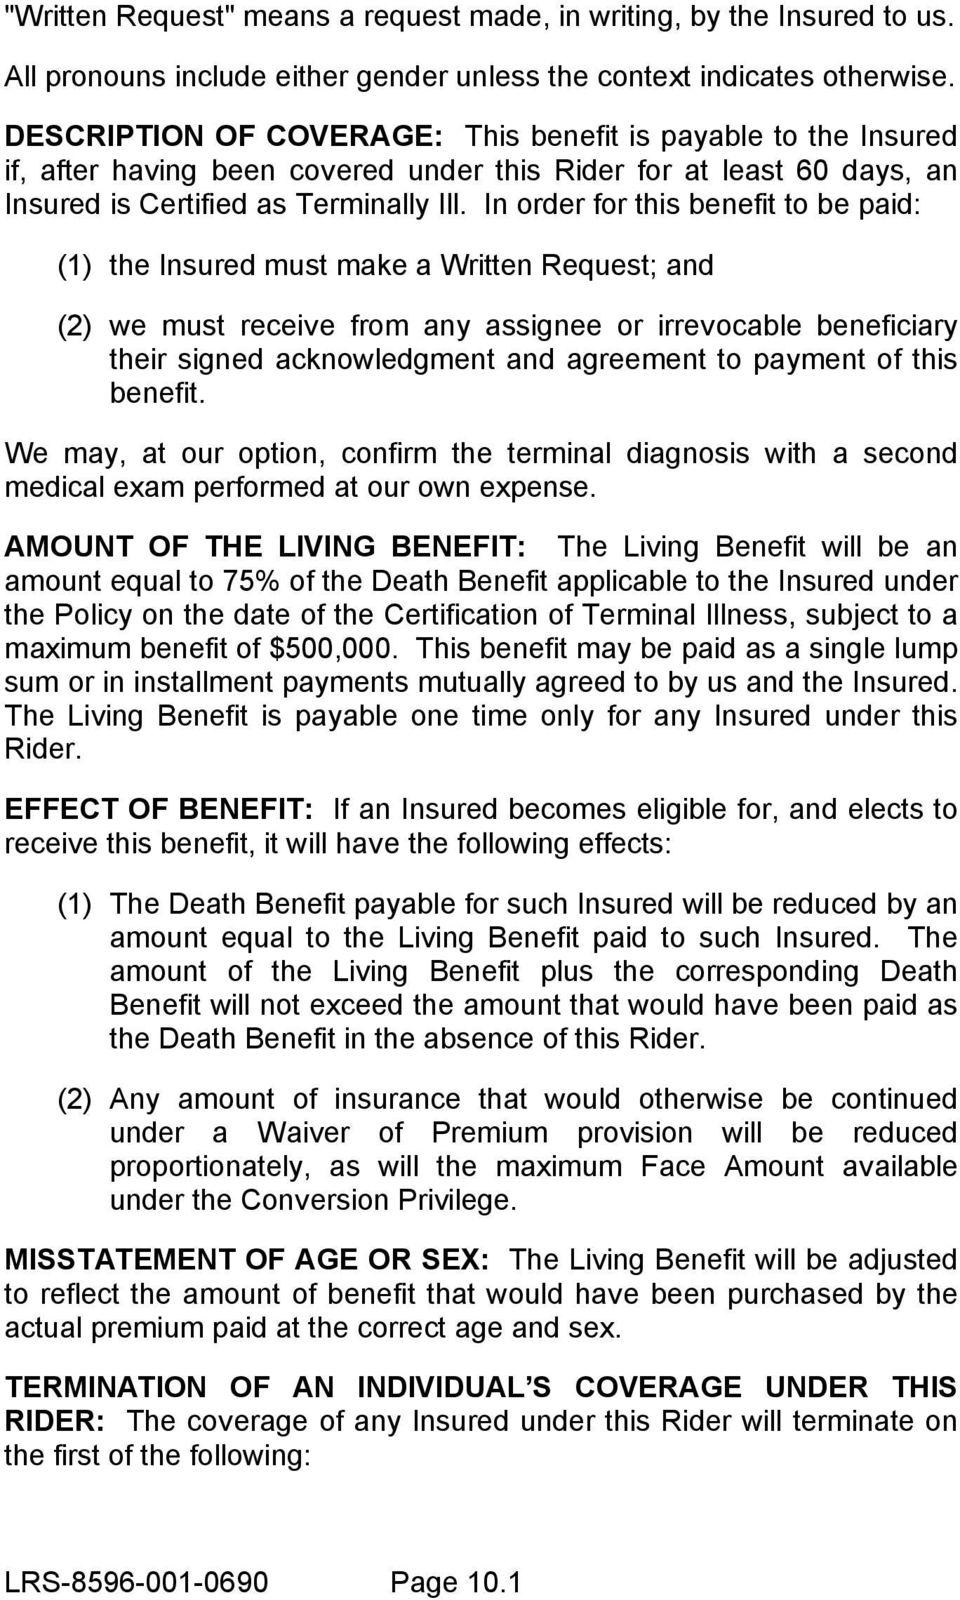 In order for this benefit to be paid: (1) the Insured must make a Written Request; and (2) we must receive from any assignee or irrevocable beneficiary their signed acknowledgment and agreement to